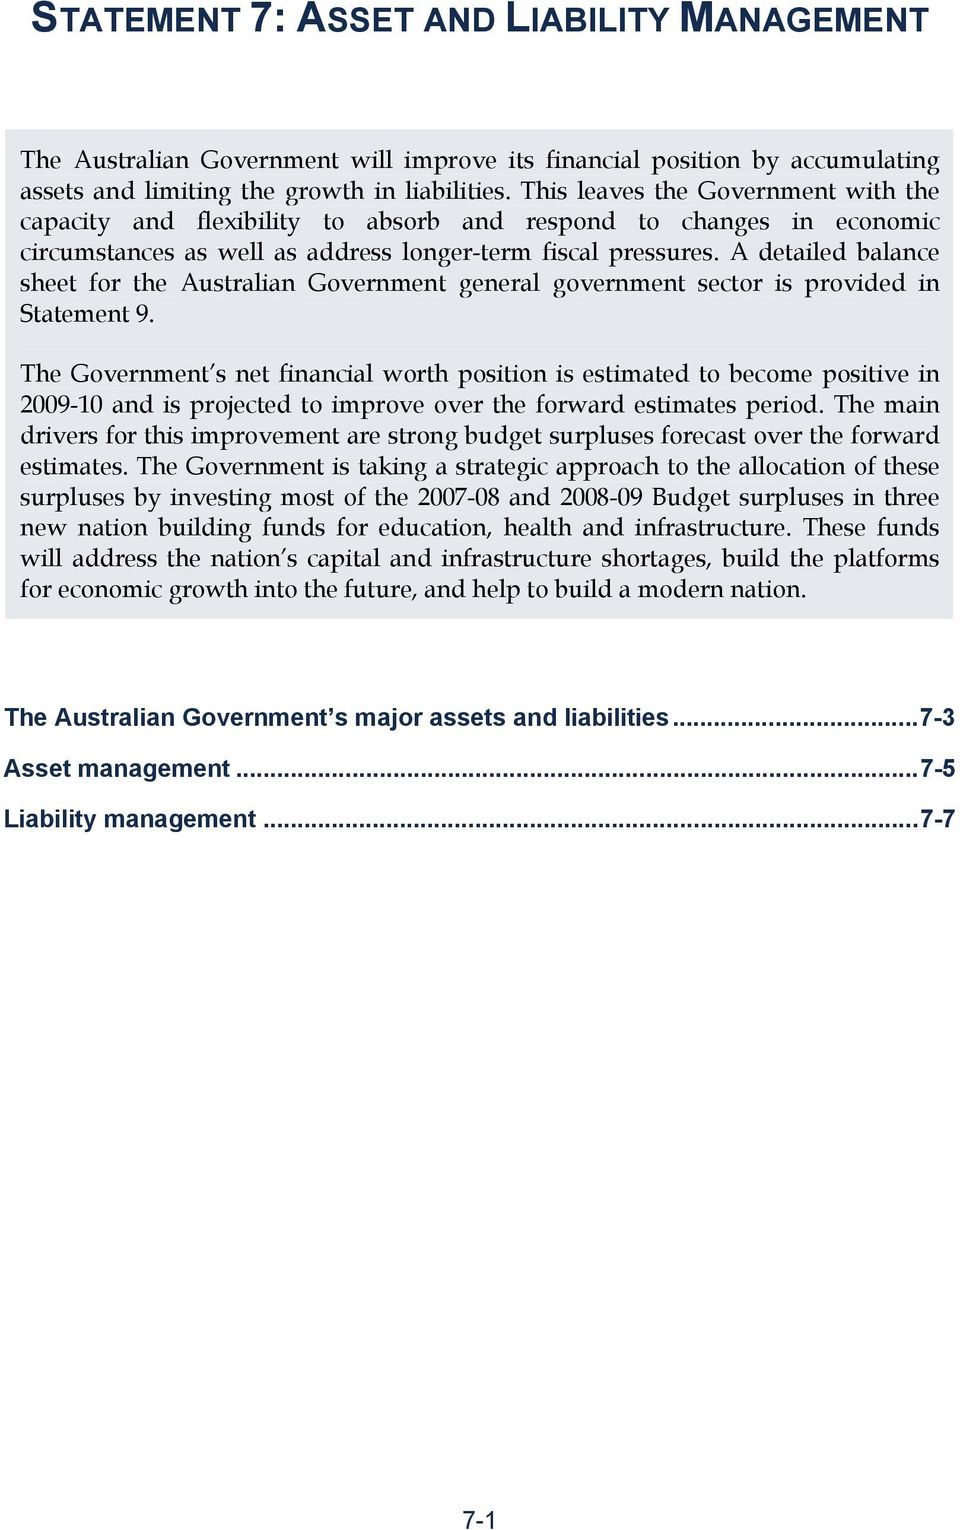 A detailed balance sheet for the Australian Government general government sector is provided in Statement 9.